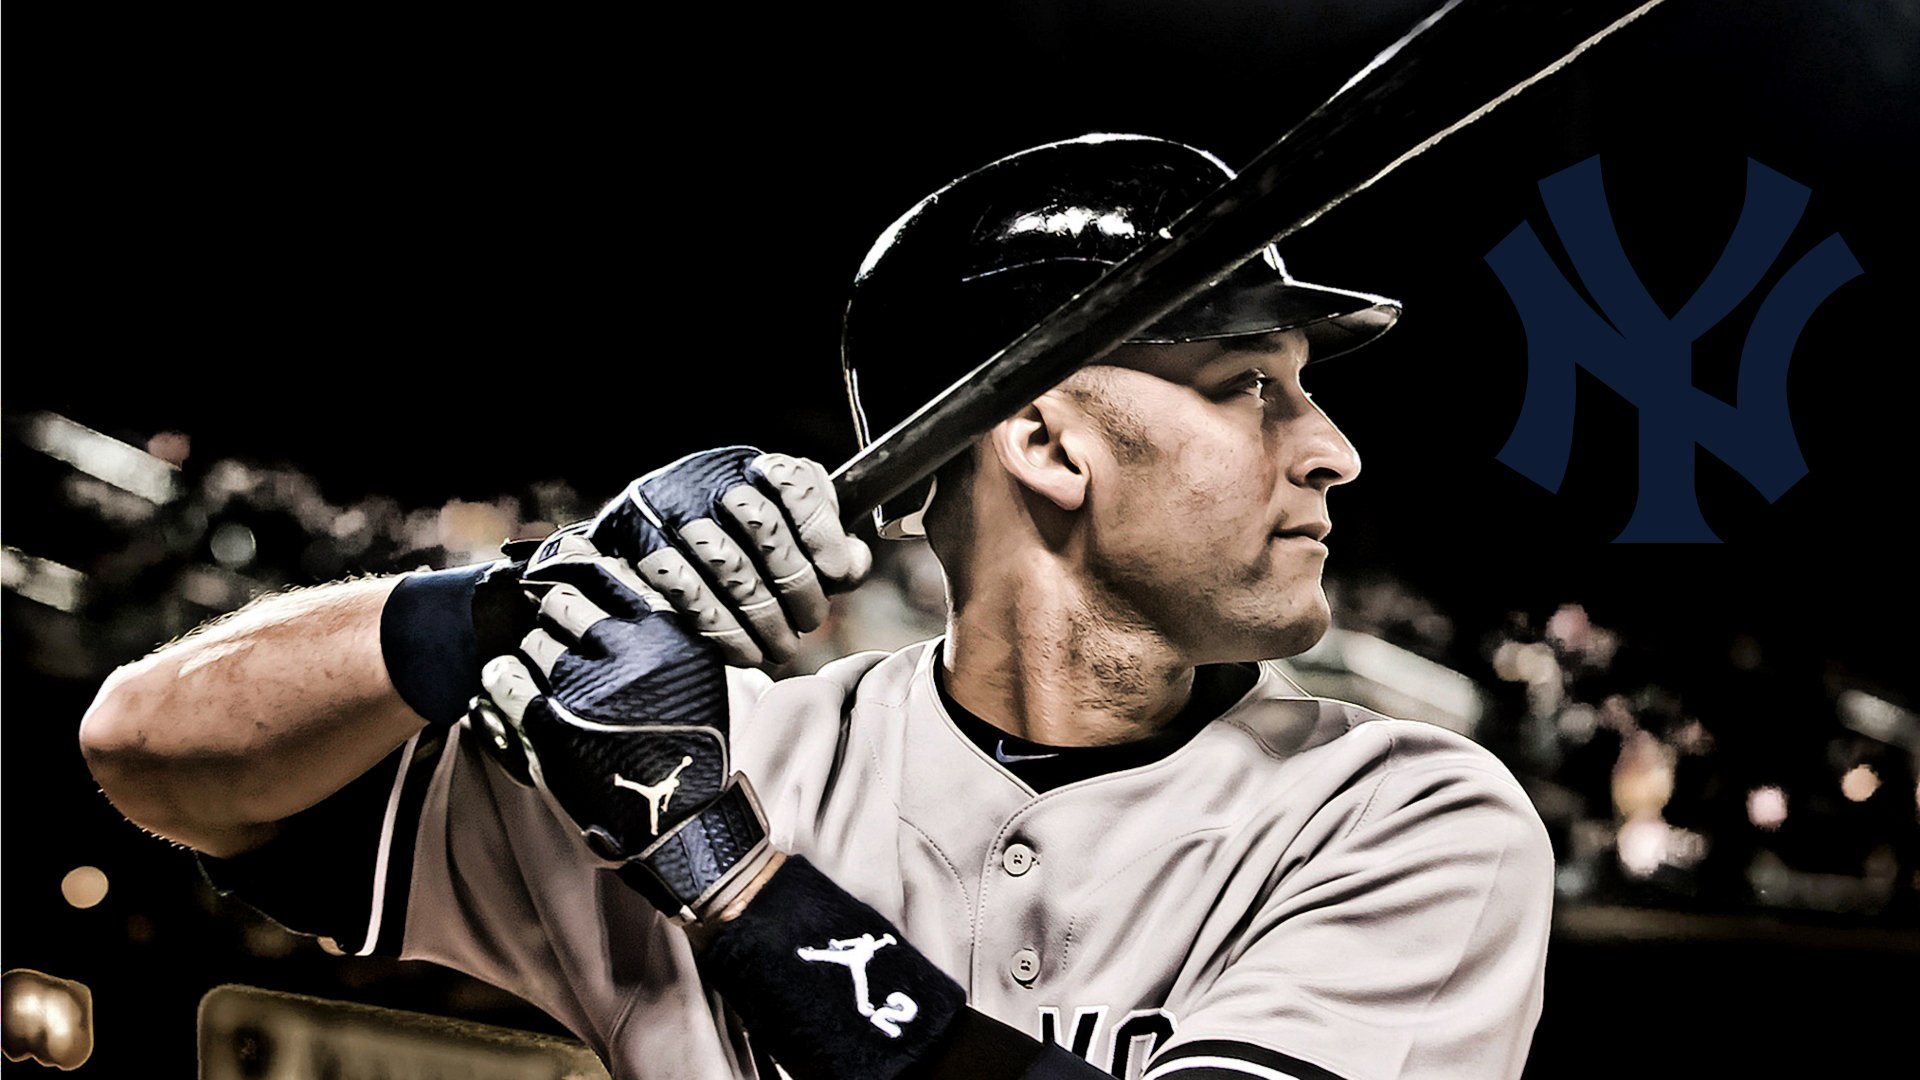 Derek Jeter Browser Themes Wallpaper Salute the Captain 1920x1080